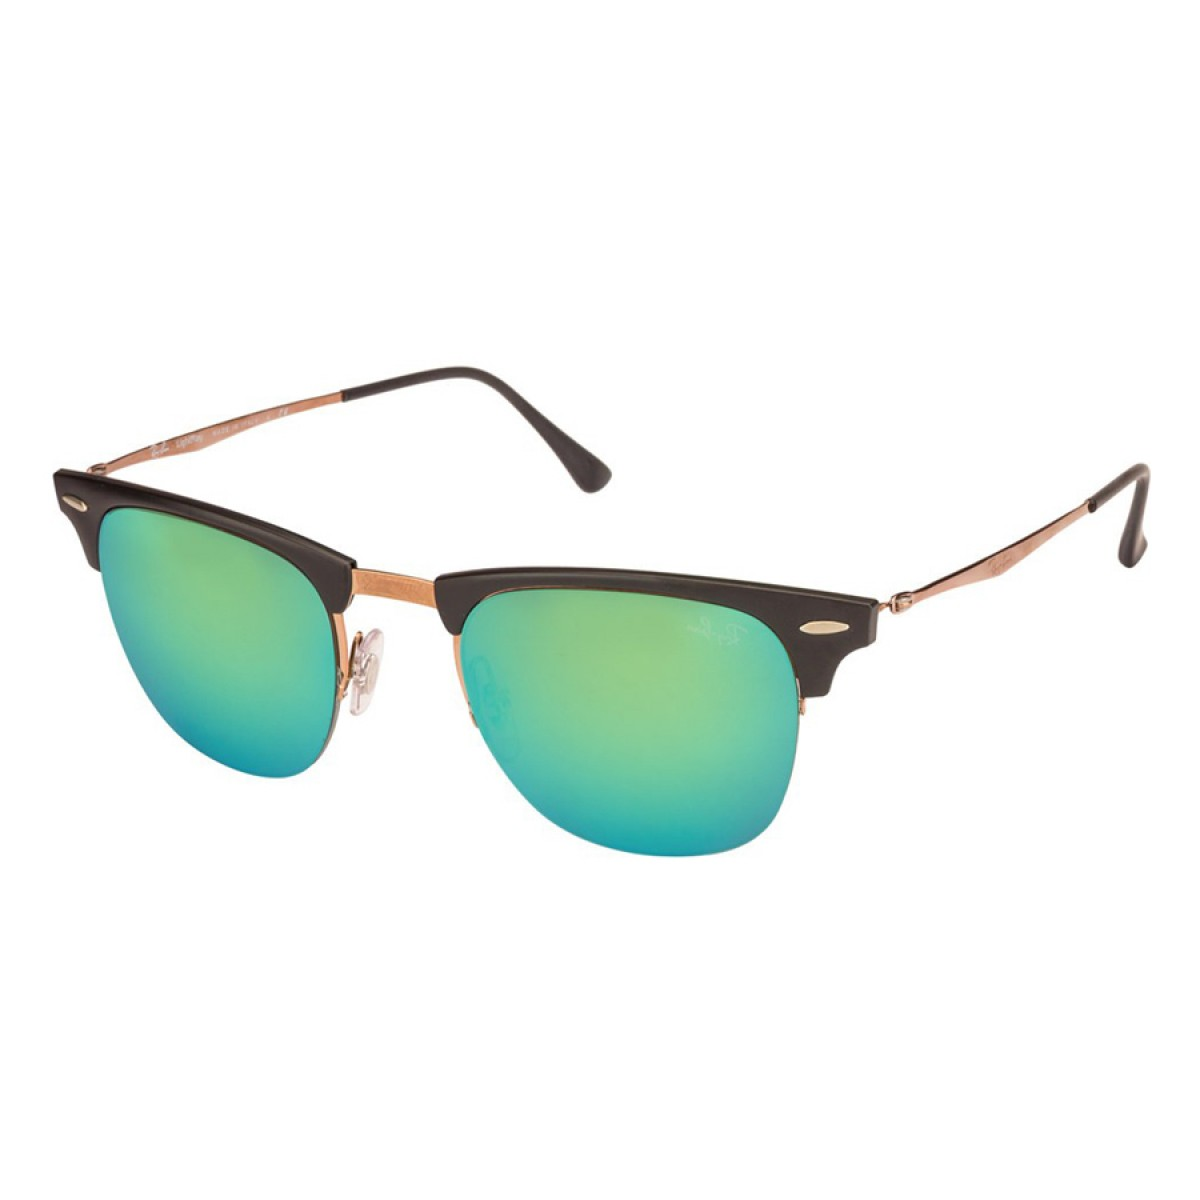 78c359c0d7 Ray Ban Light Ray Clubmaster Titanium Unisex Sunglasses RB8056-176 3R -  Sunglasses - Fashion World